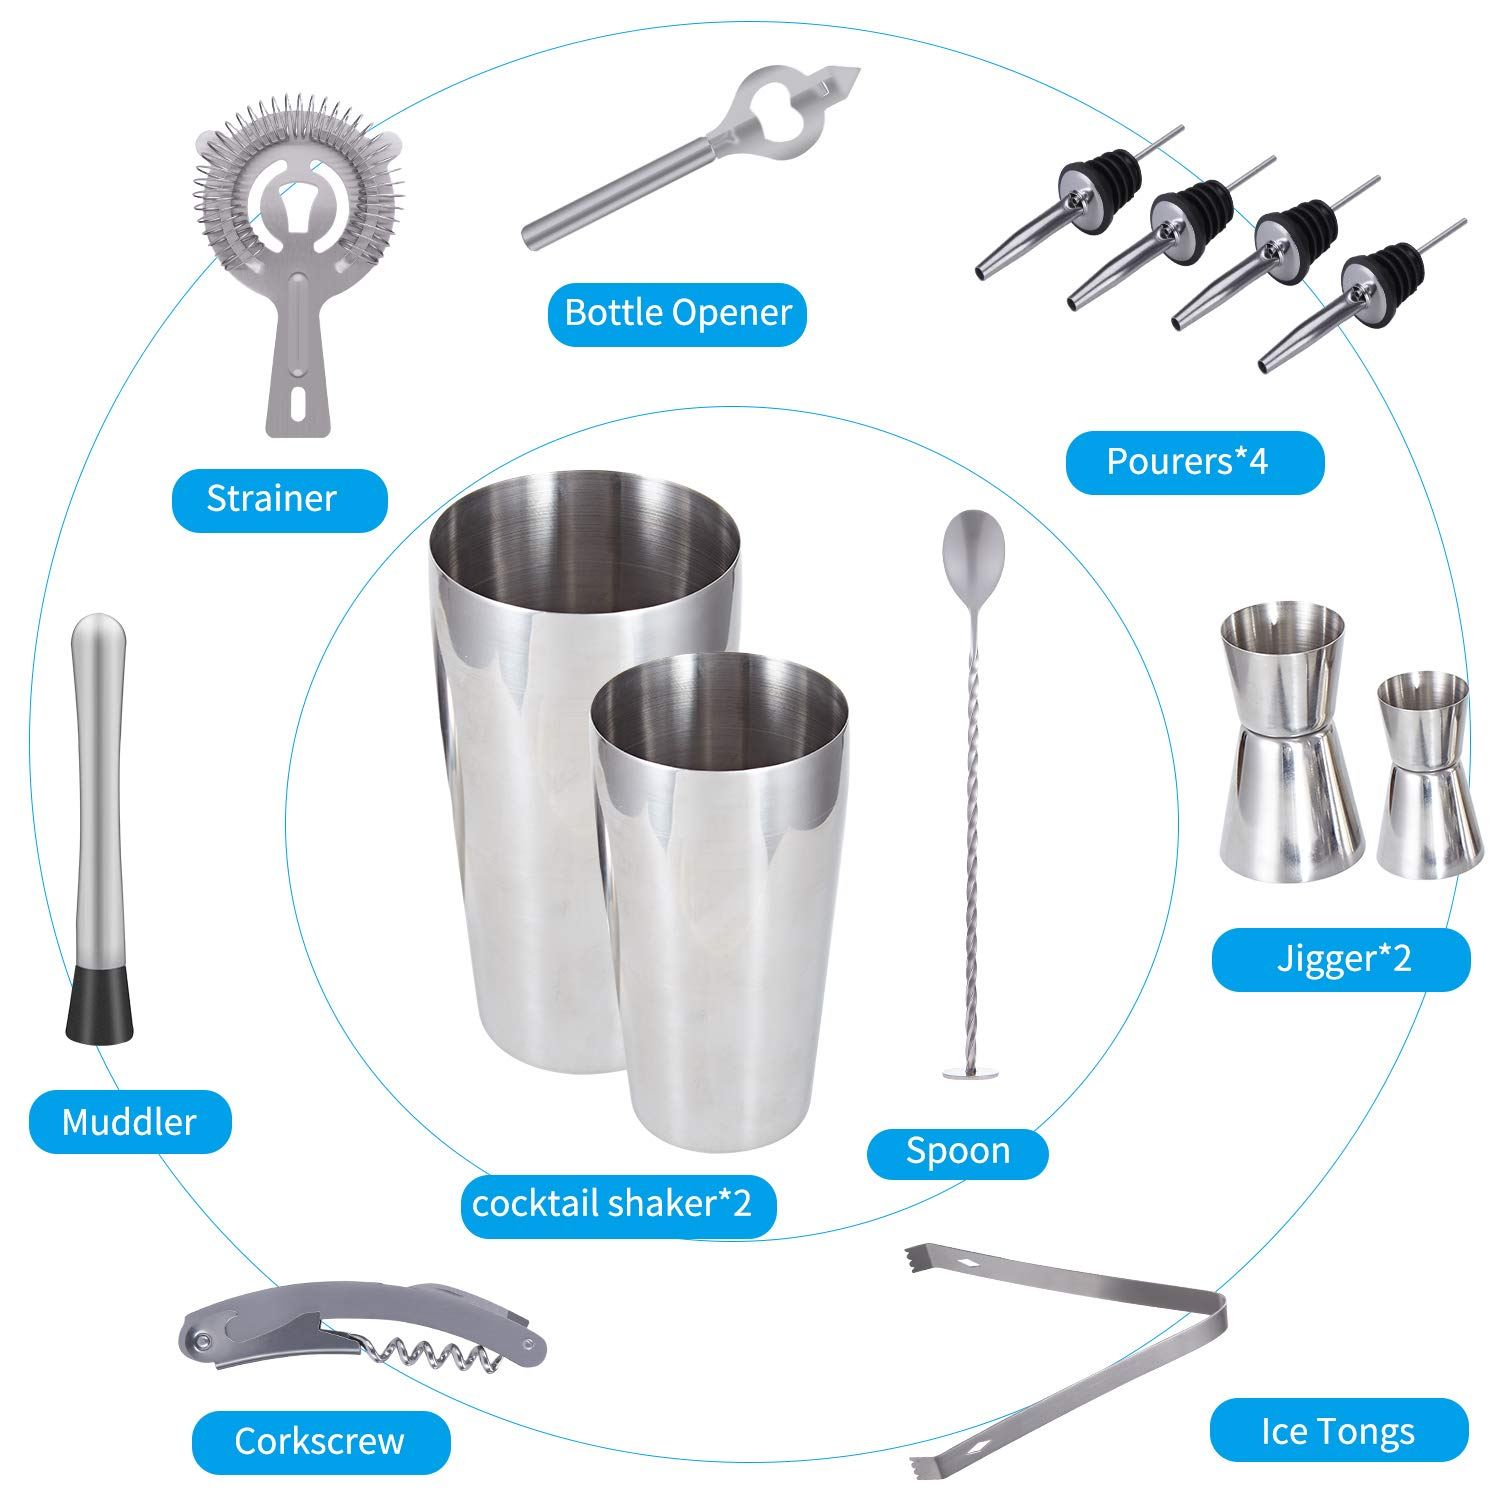 Cocktail Shaker Set Professional Bartender Kit - Premium Brushed Stainless Steel Martini Mixer, Spoon, pourers, Ice Tong, Strainer, Jigger, Muddler, Bottle Opener, Cork Screw for home Barware Tools by TOP BEAUTY (Image #2)